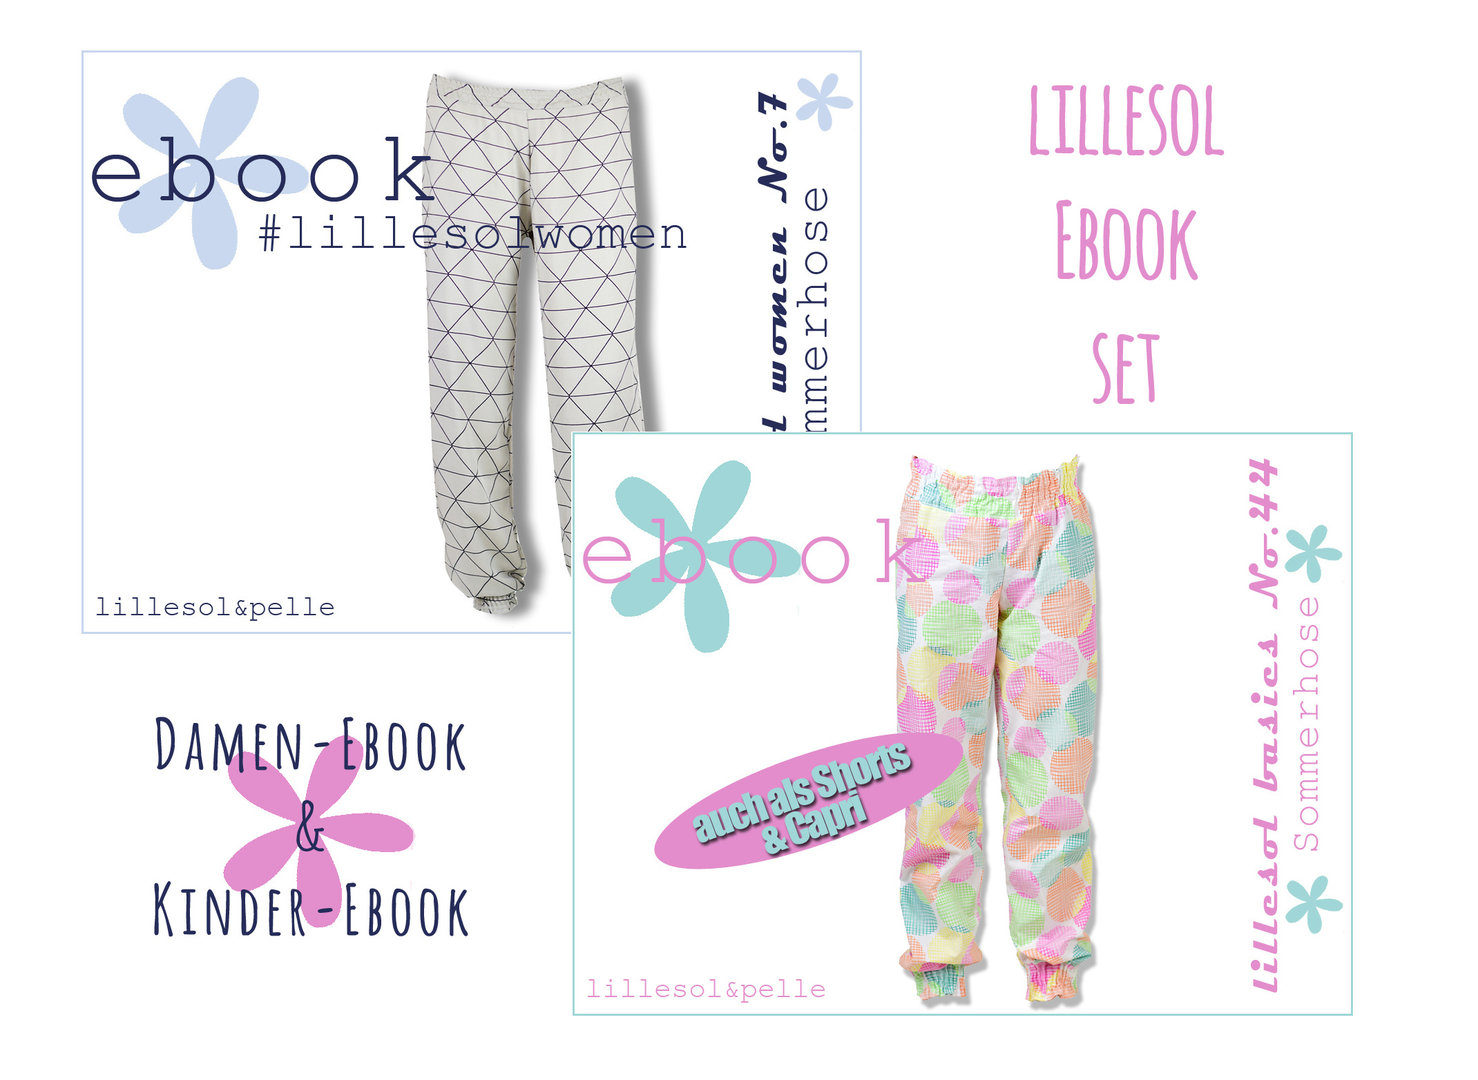 lillesol ebook set basic No.44 und women No.7